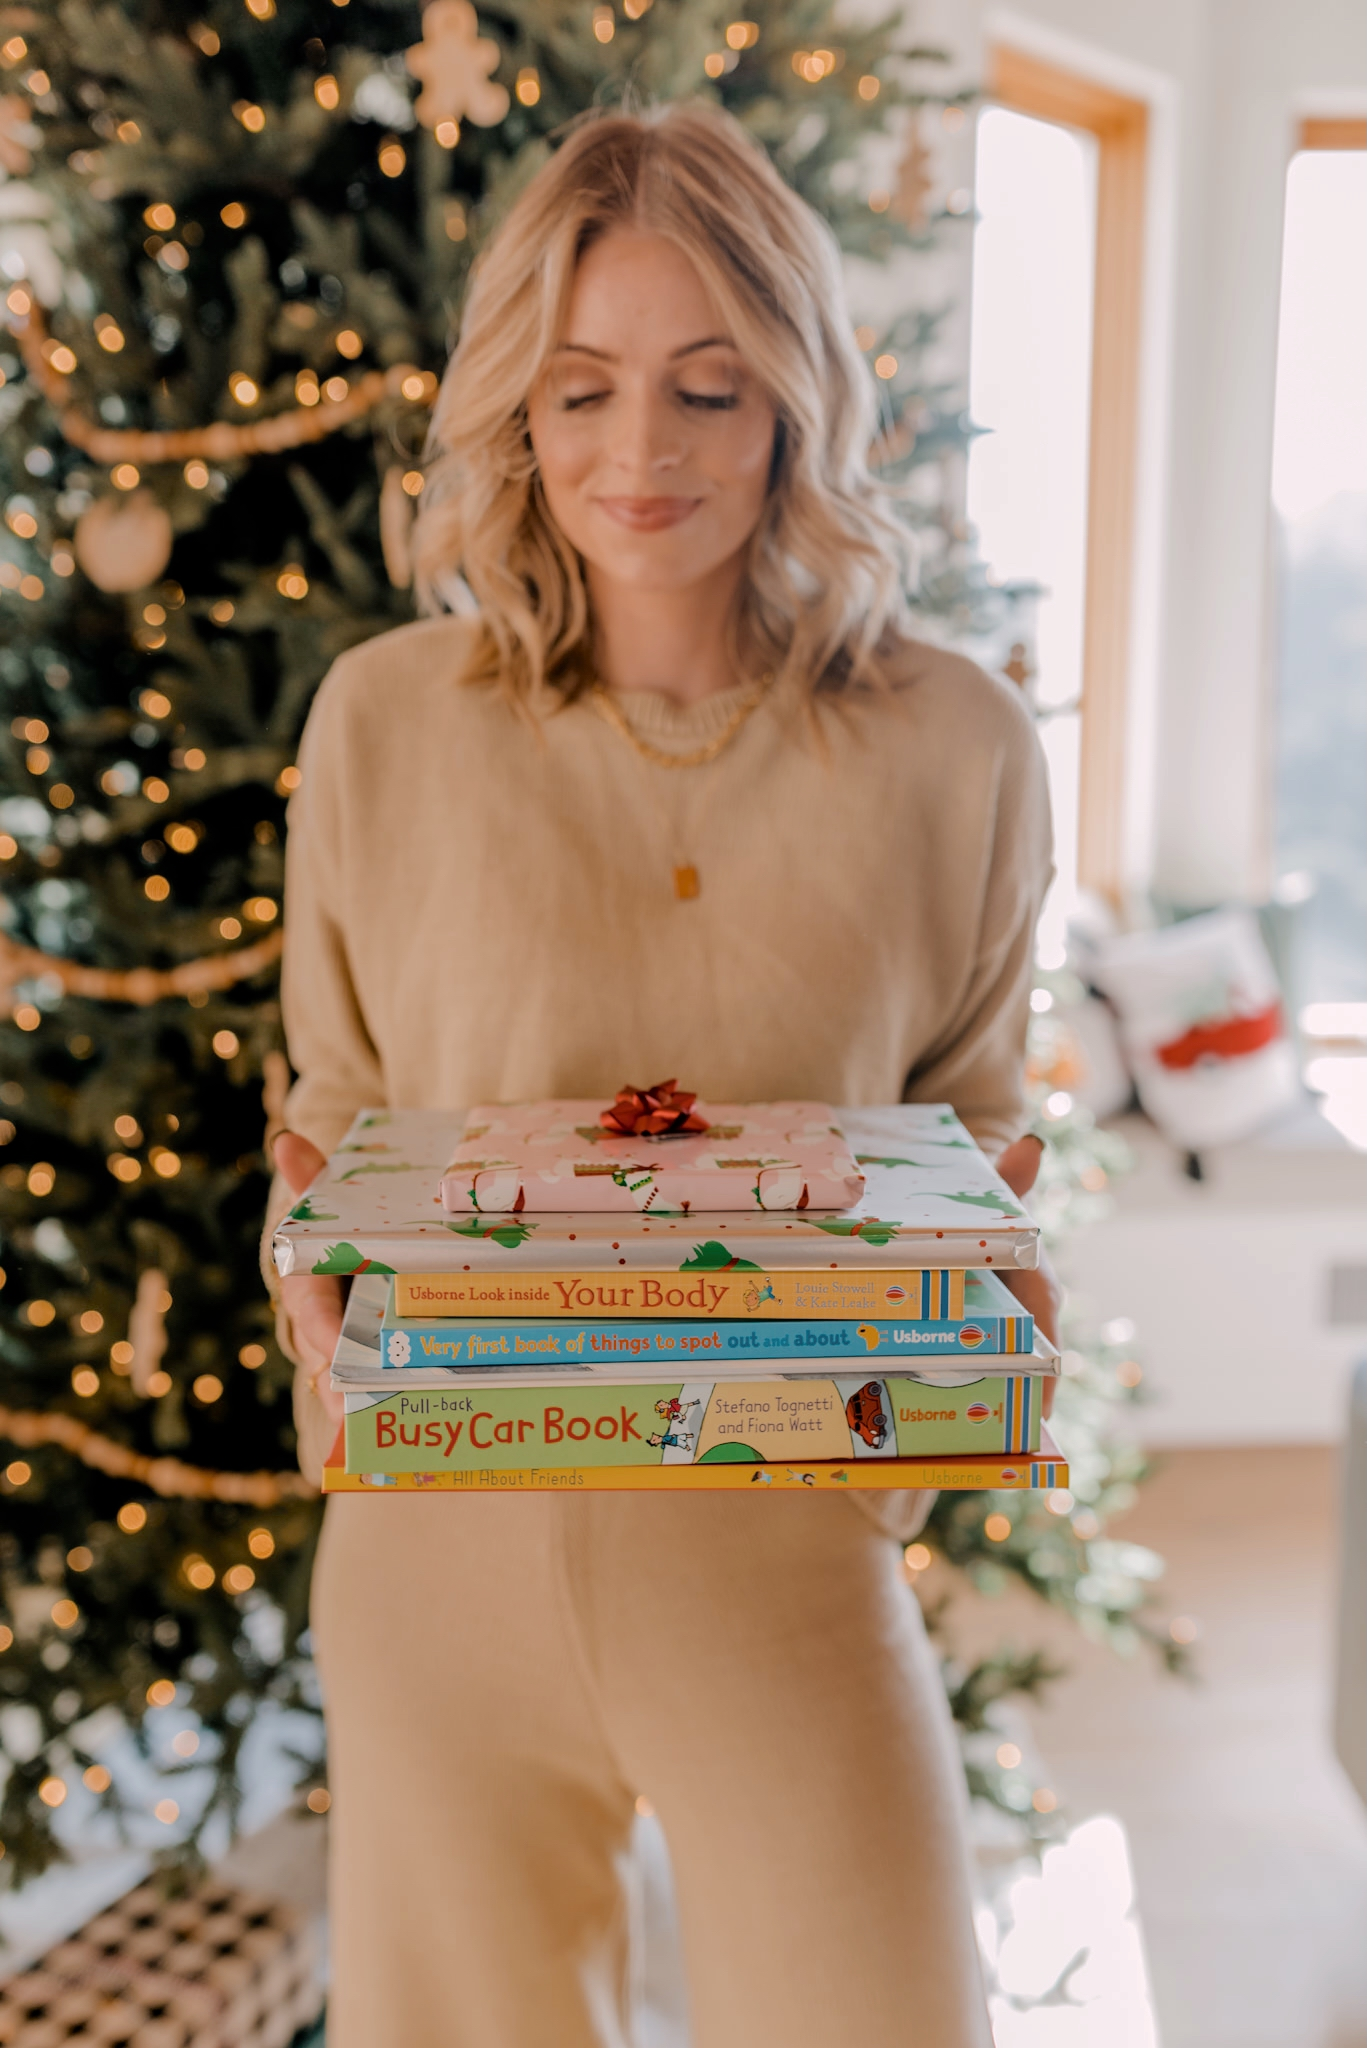 12 days of books for Christmas |12 Days of Books by popular San Diego lifestyle blog, Navy Grace: image of a woman standing in front of her Christmas tree and holding a pile of books.